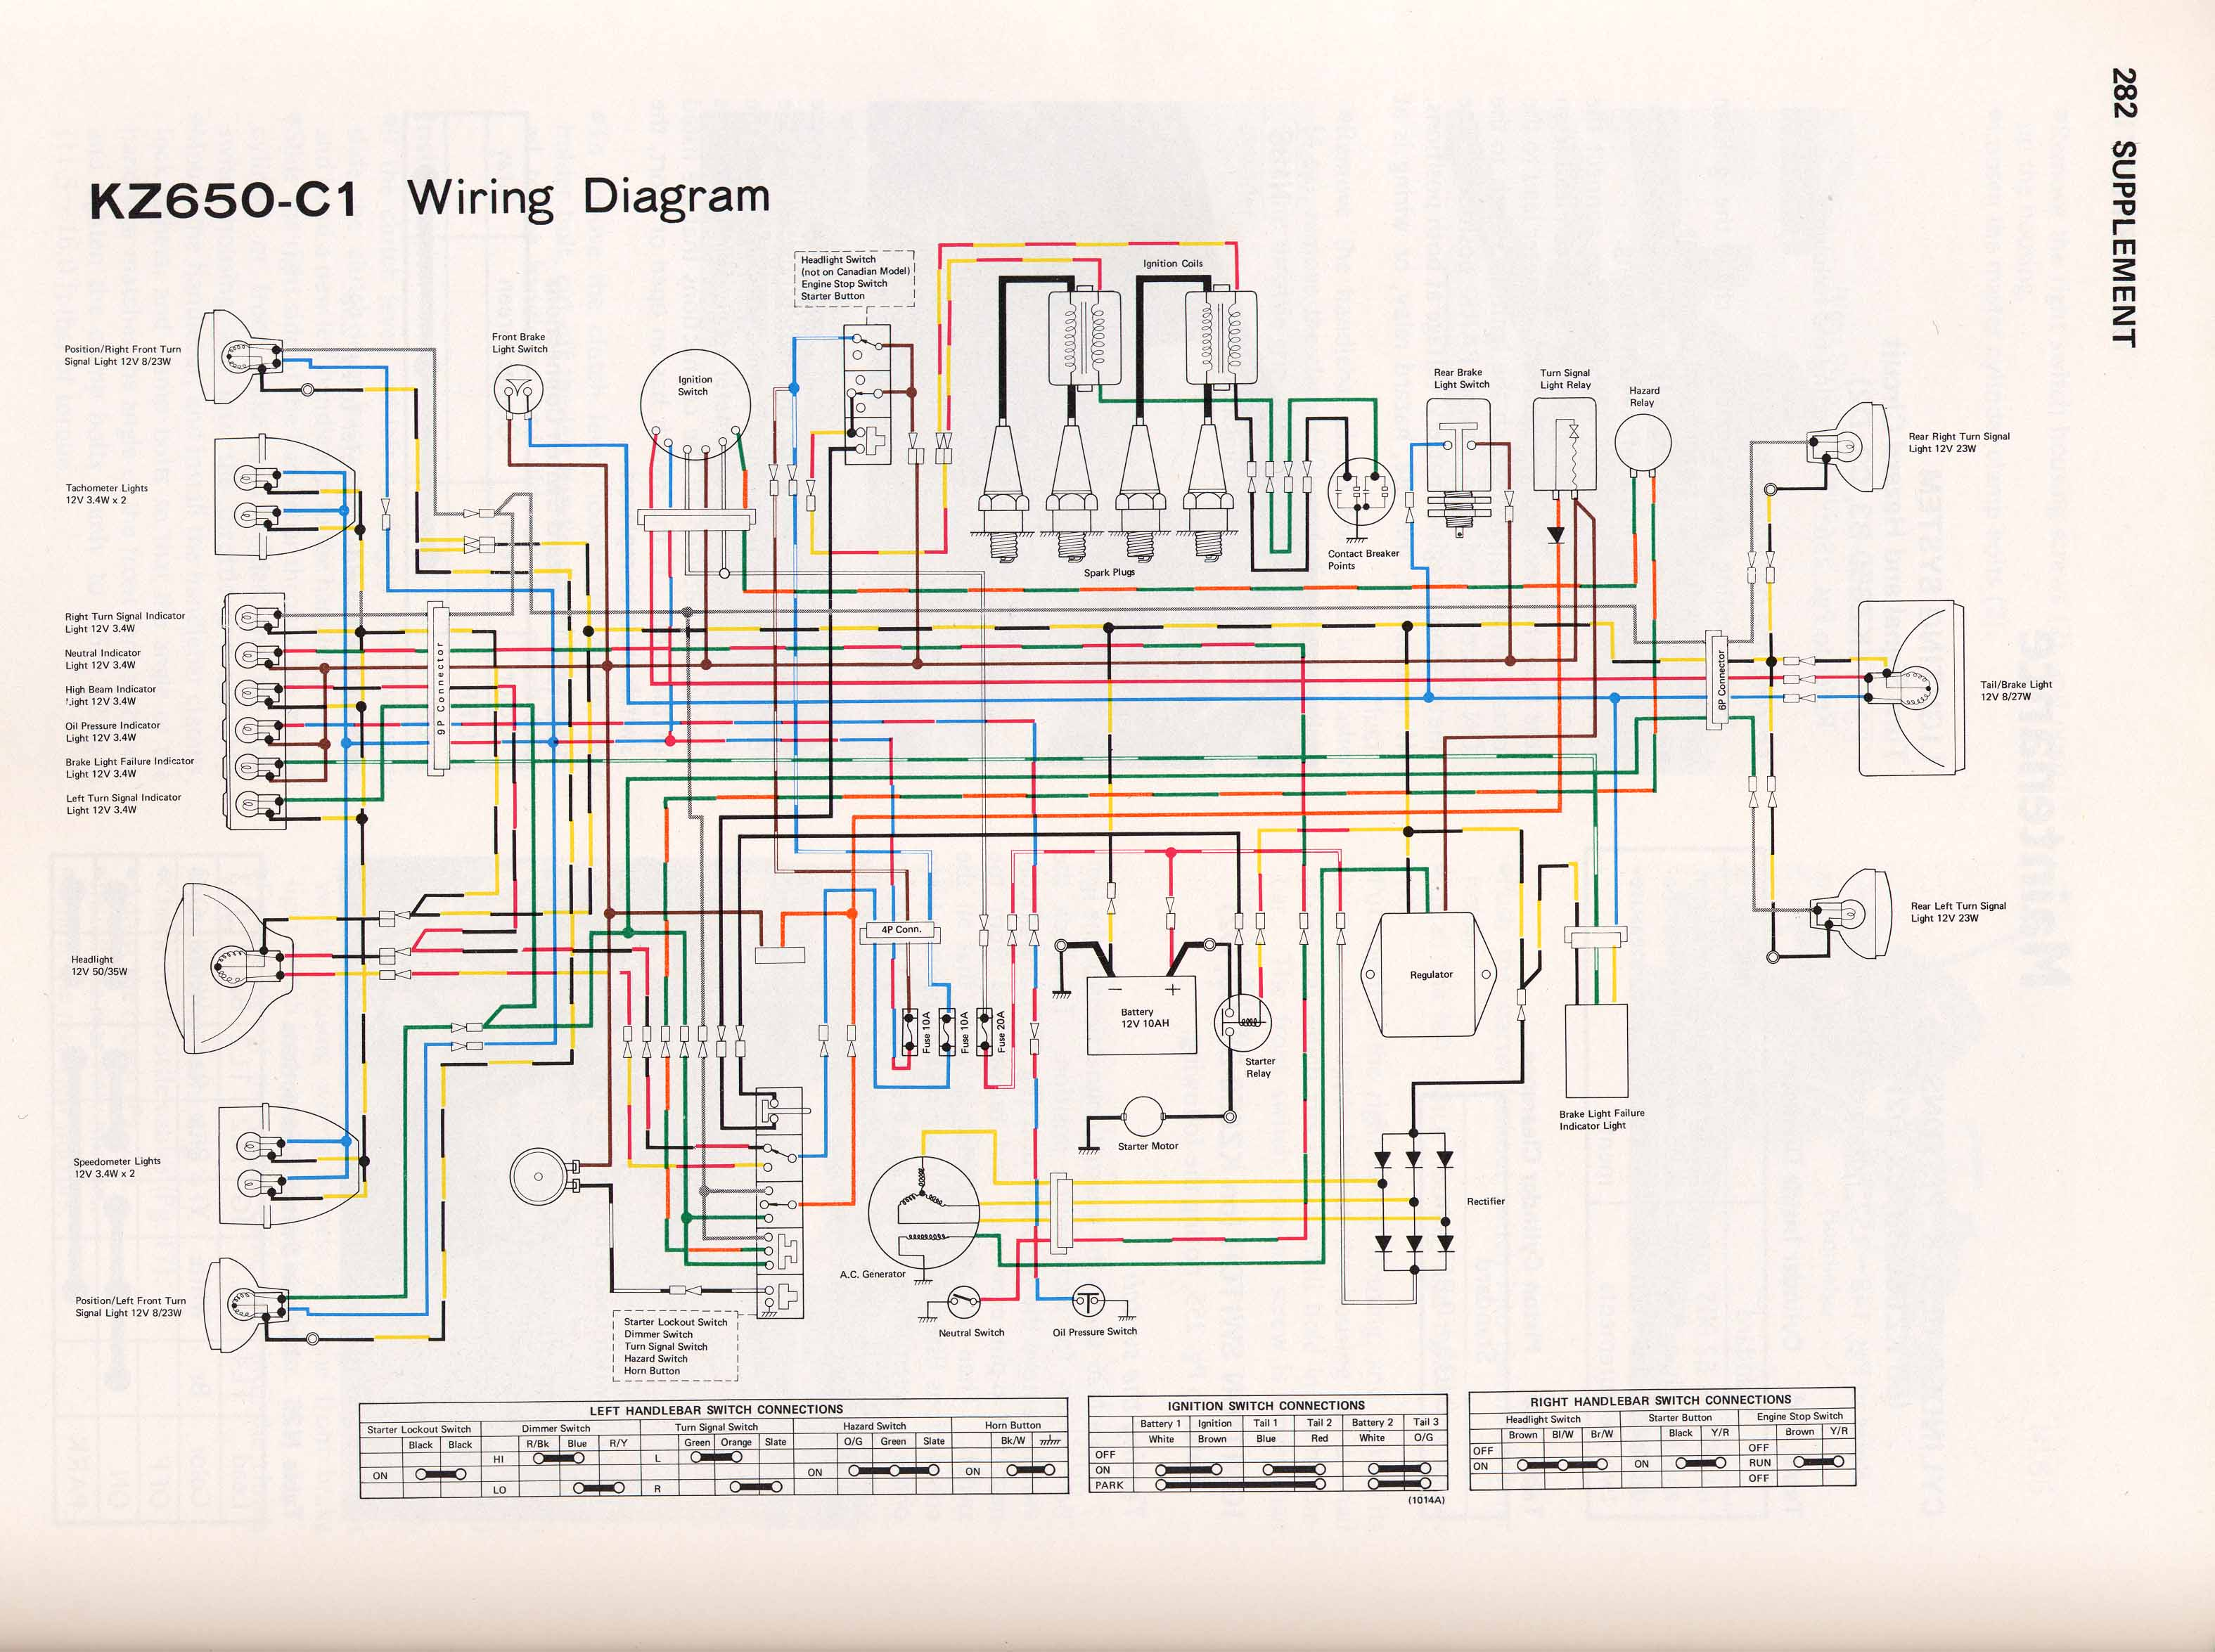 kz650 info wiring diagrams D4 Wiring-Diagram KZ650 77 Kz650 Wiring Diagram #1